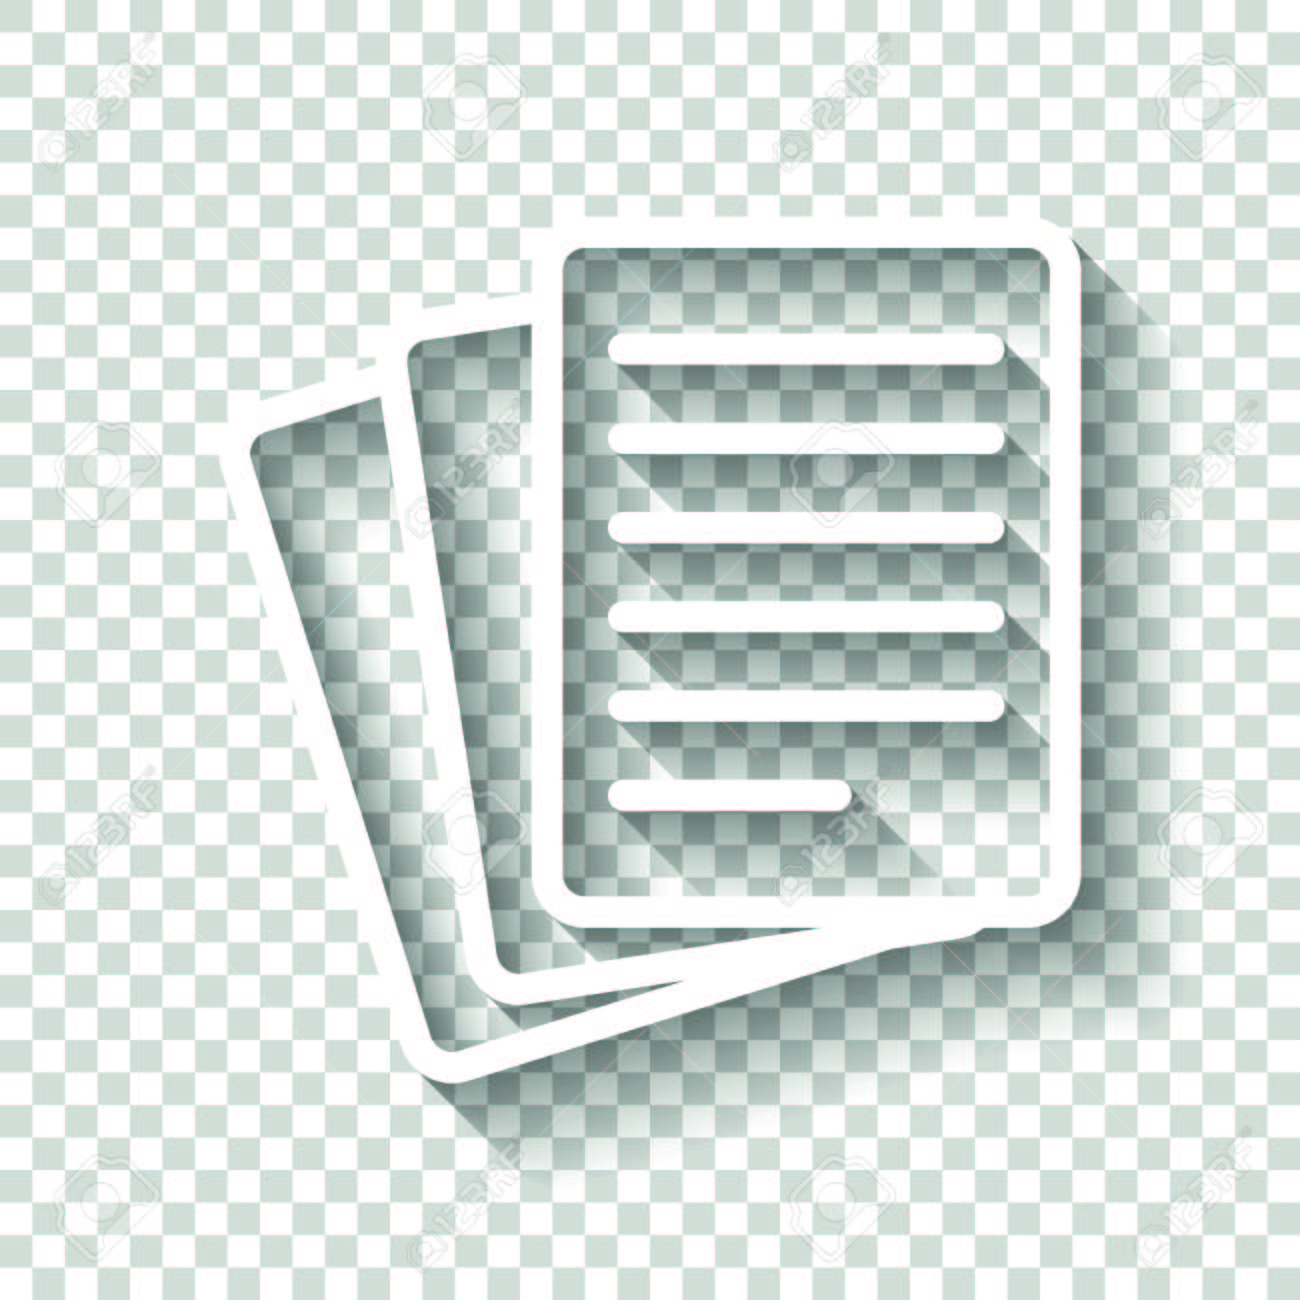 stack of paper icon. white icon with shadow on transparent